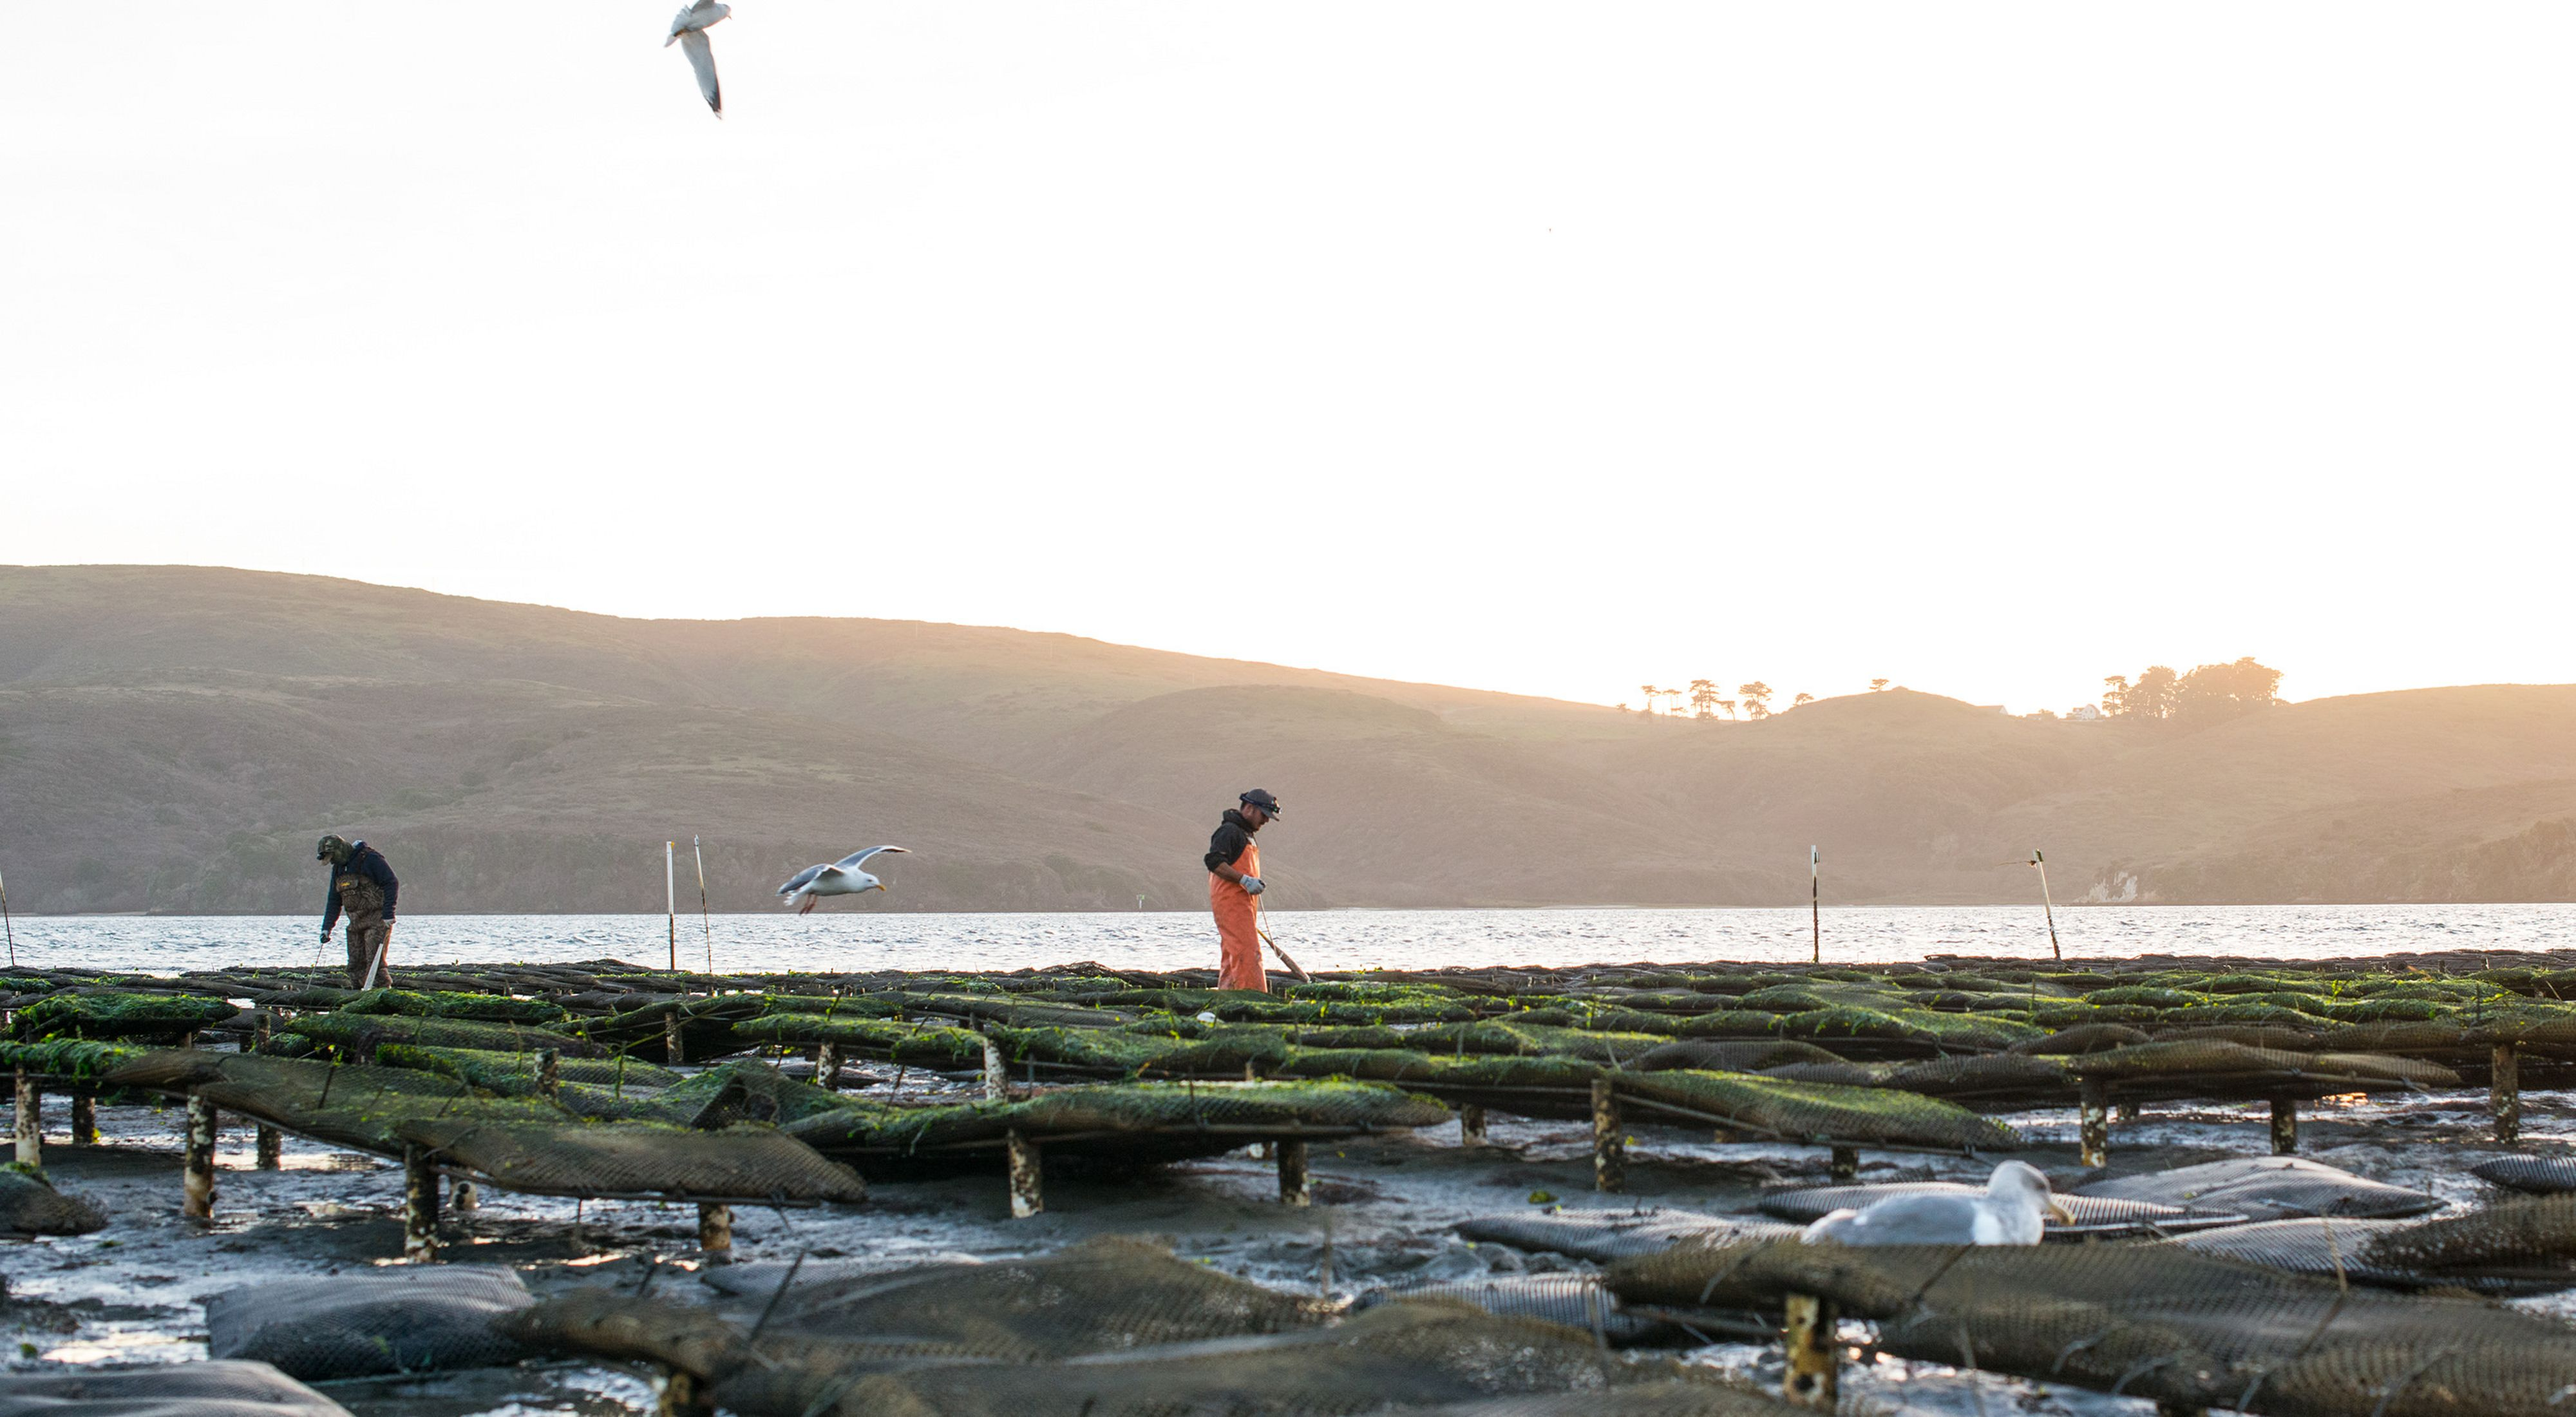 Workers at sunrise at Hog Island Oyster Farm on Tomales Bay in Marshall, California.